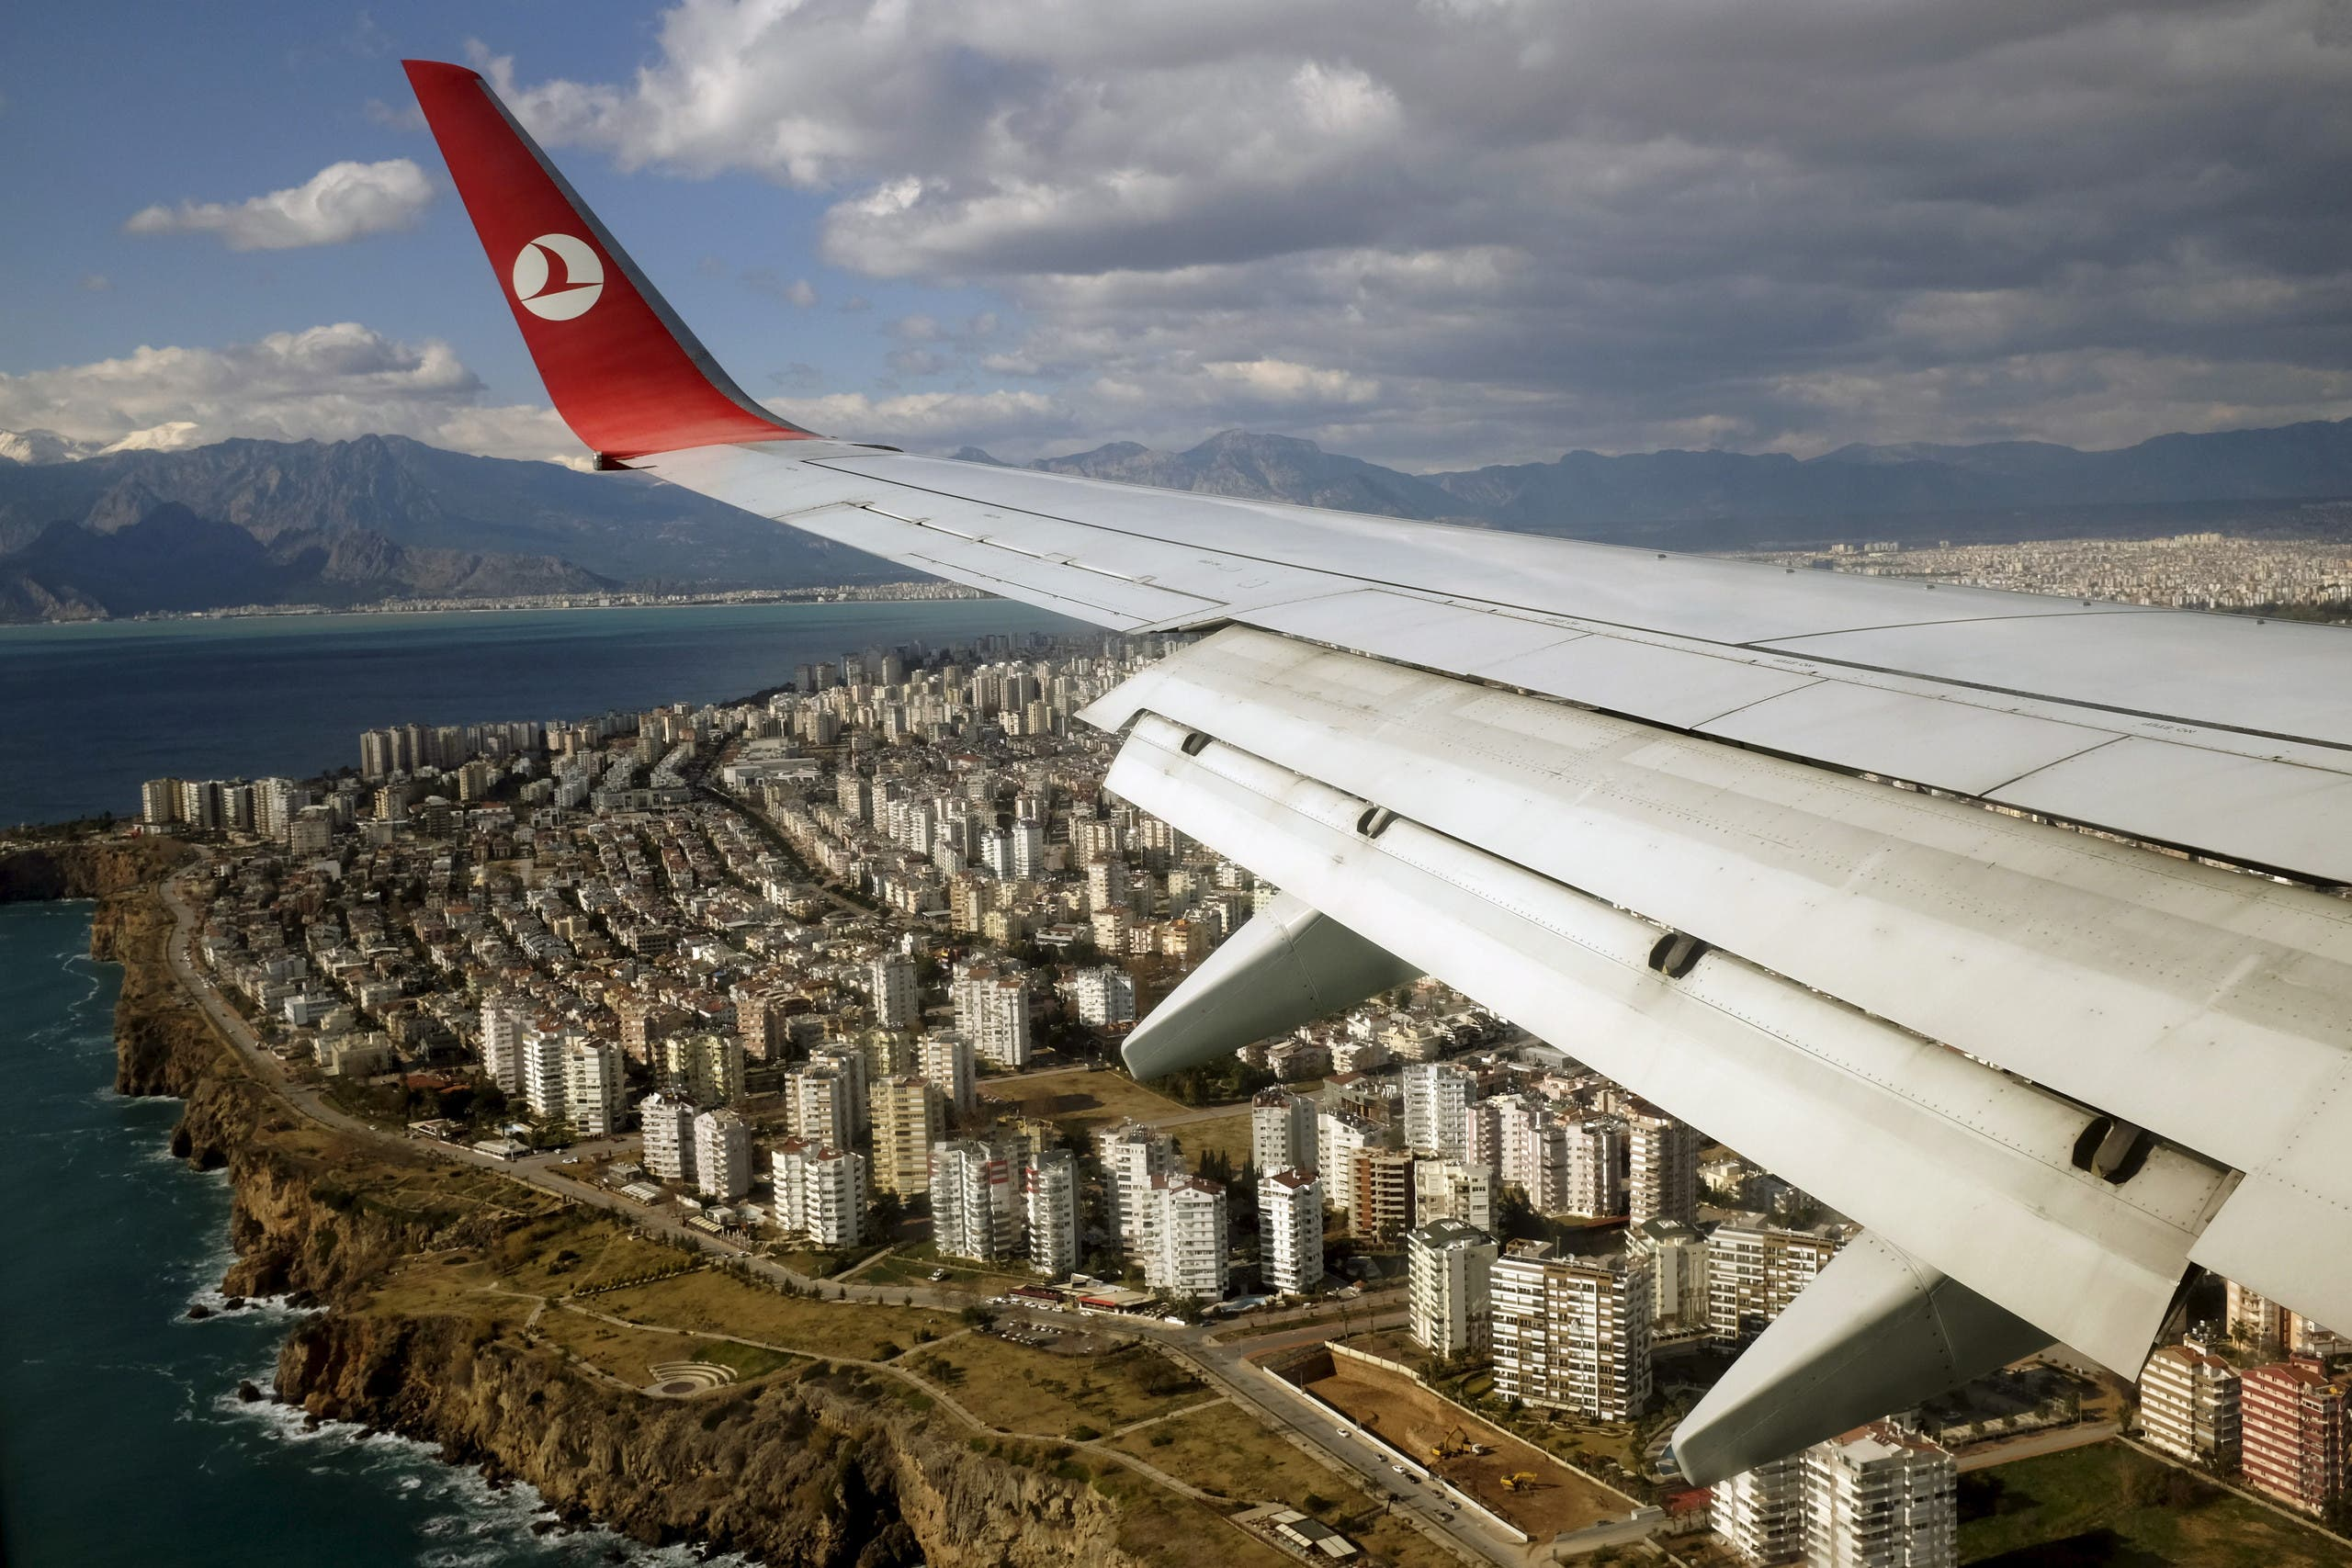 A Turkish Airlines Boeing 737-800 aircraft approaches to land at Antalya International airport in the Mediterranean resort city of Antalya, Turkey, January 8, 2016. (Reuters)